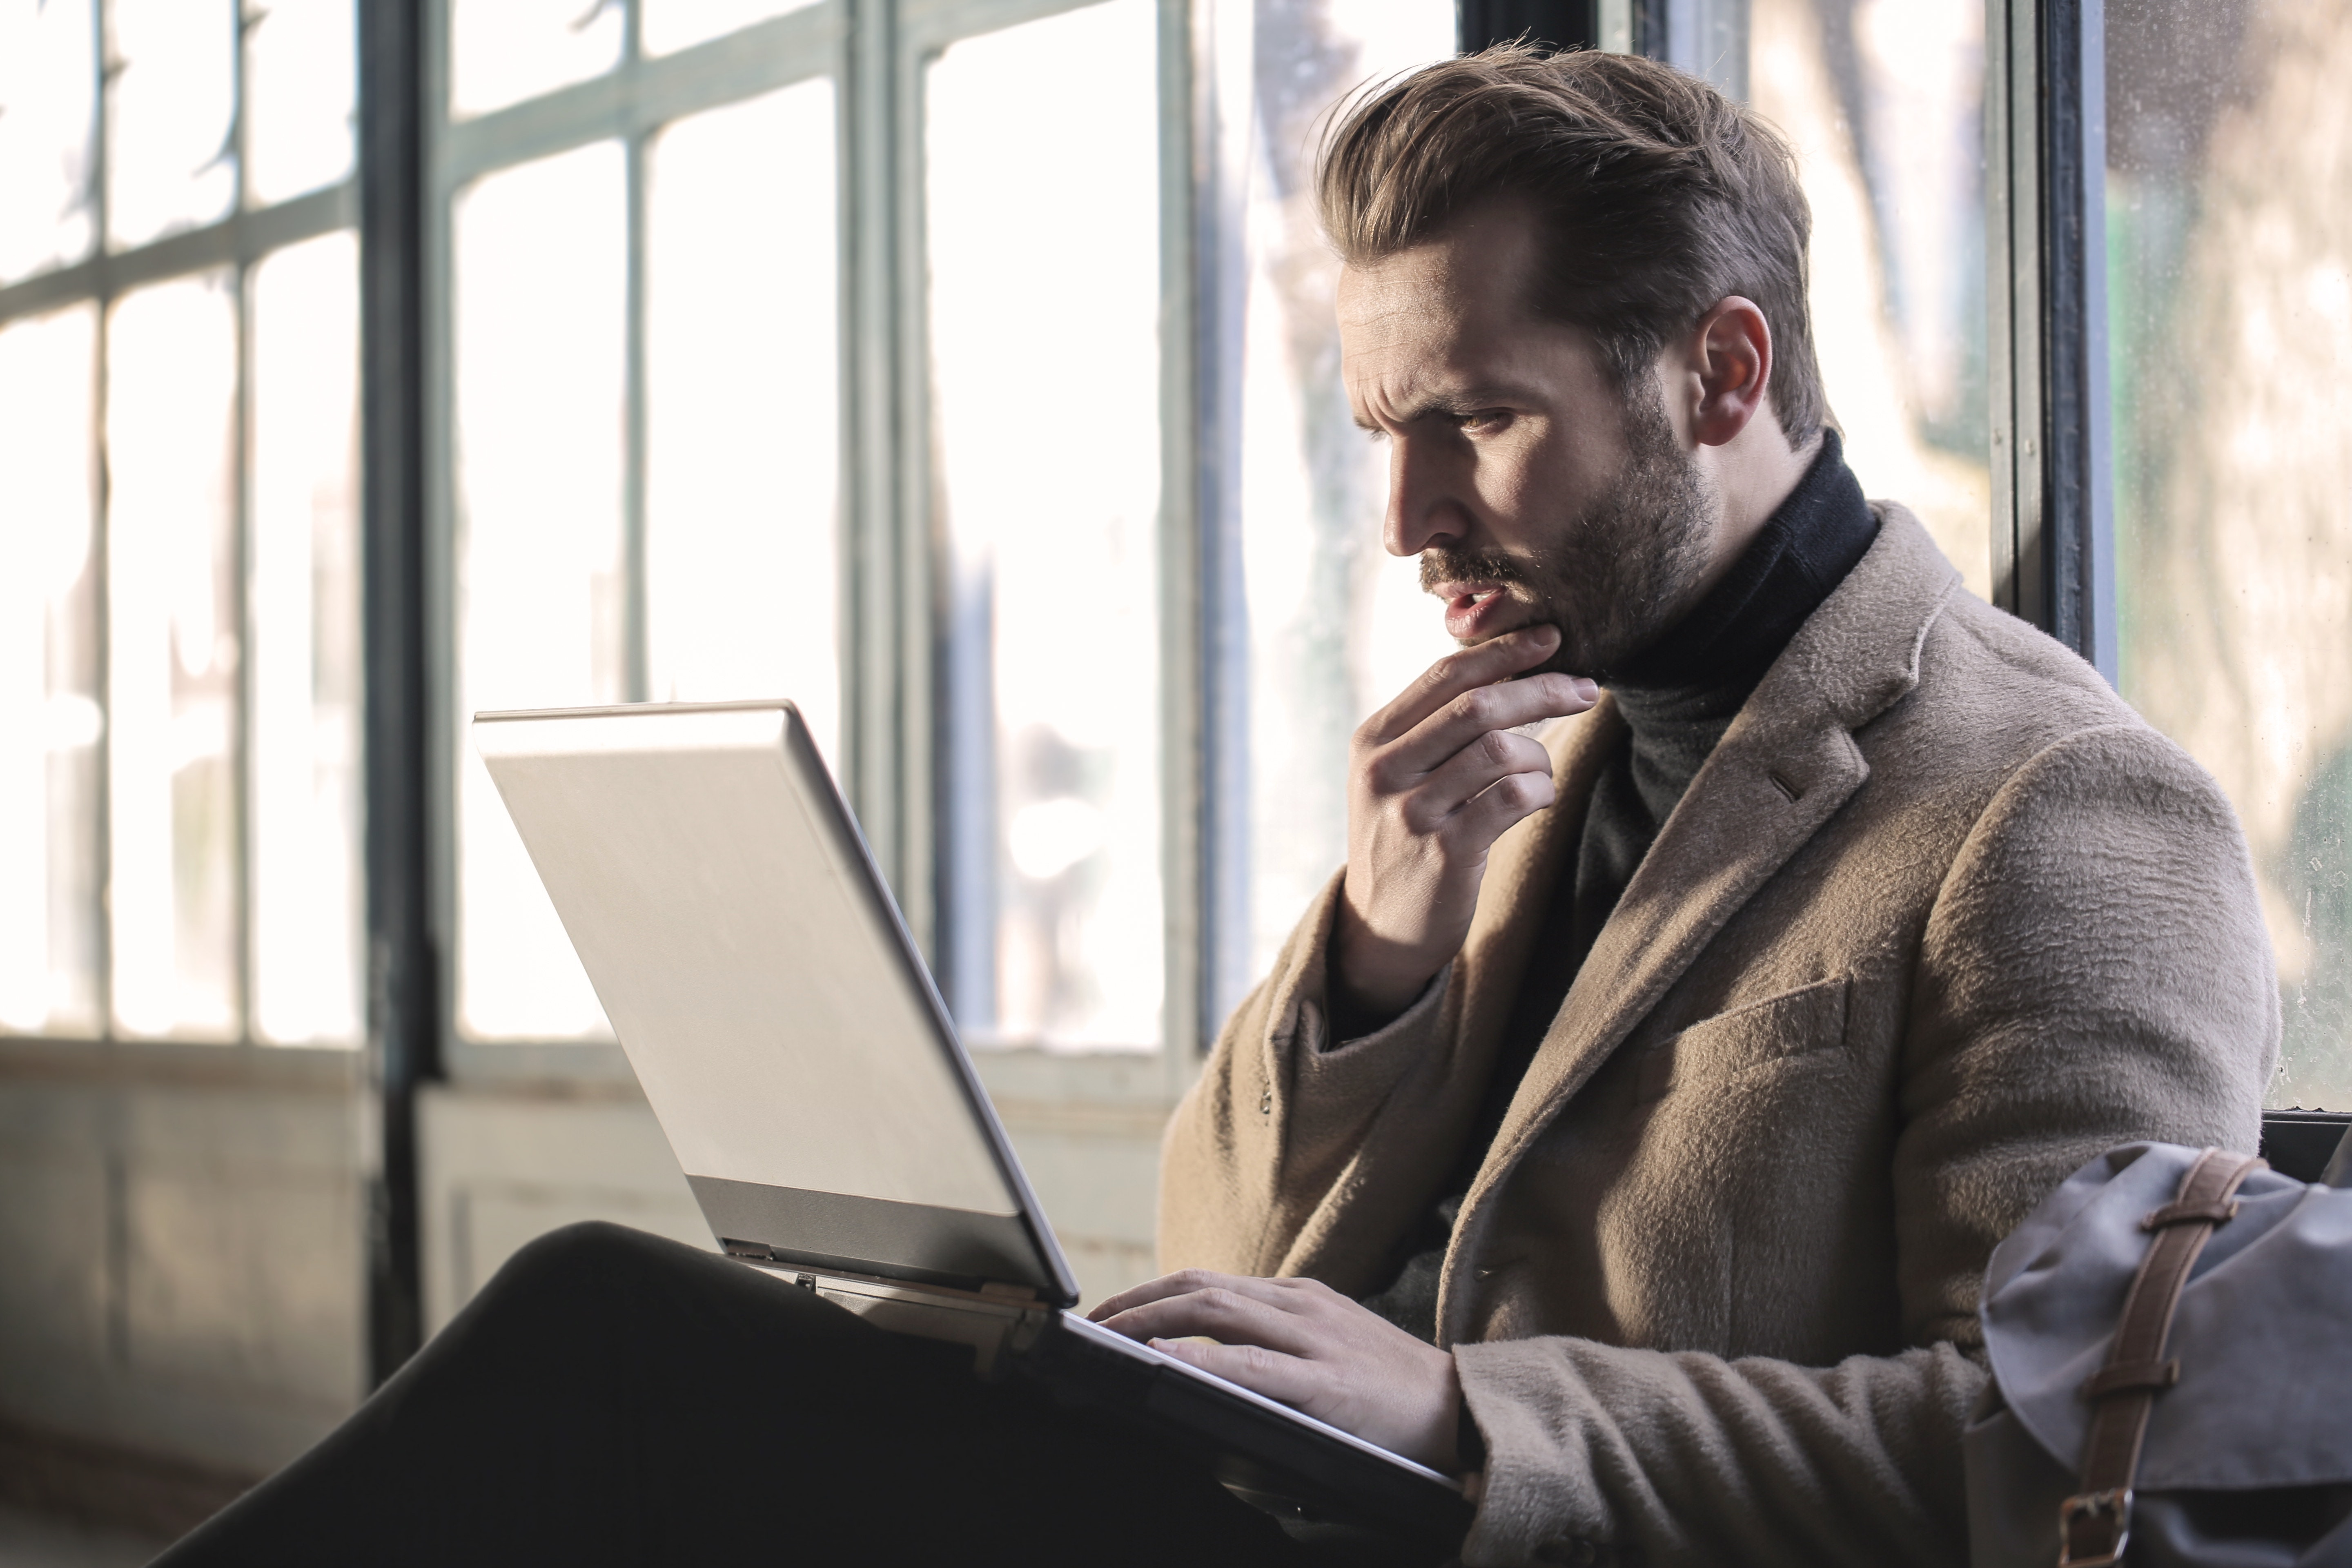 Bearded person looking at a laptop screen confused.